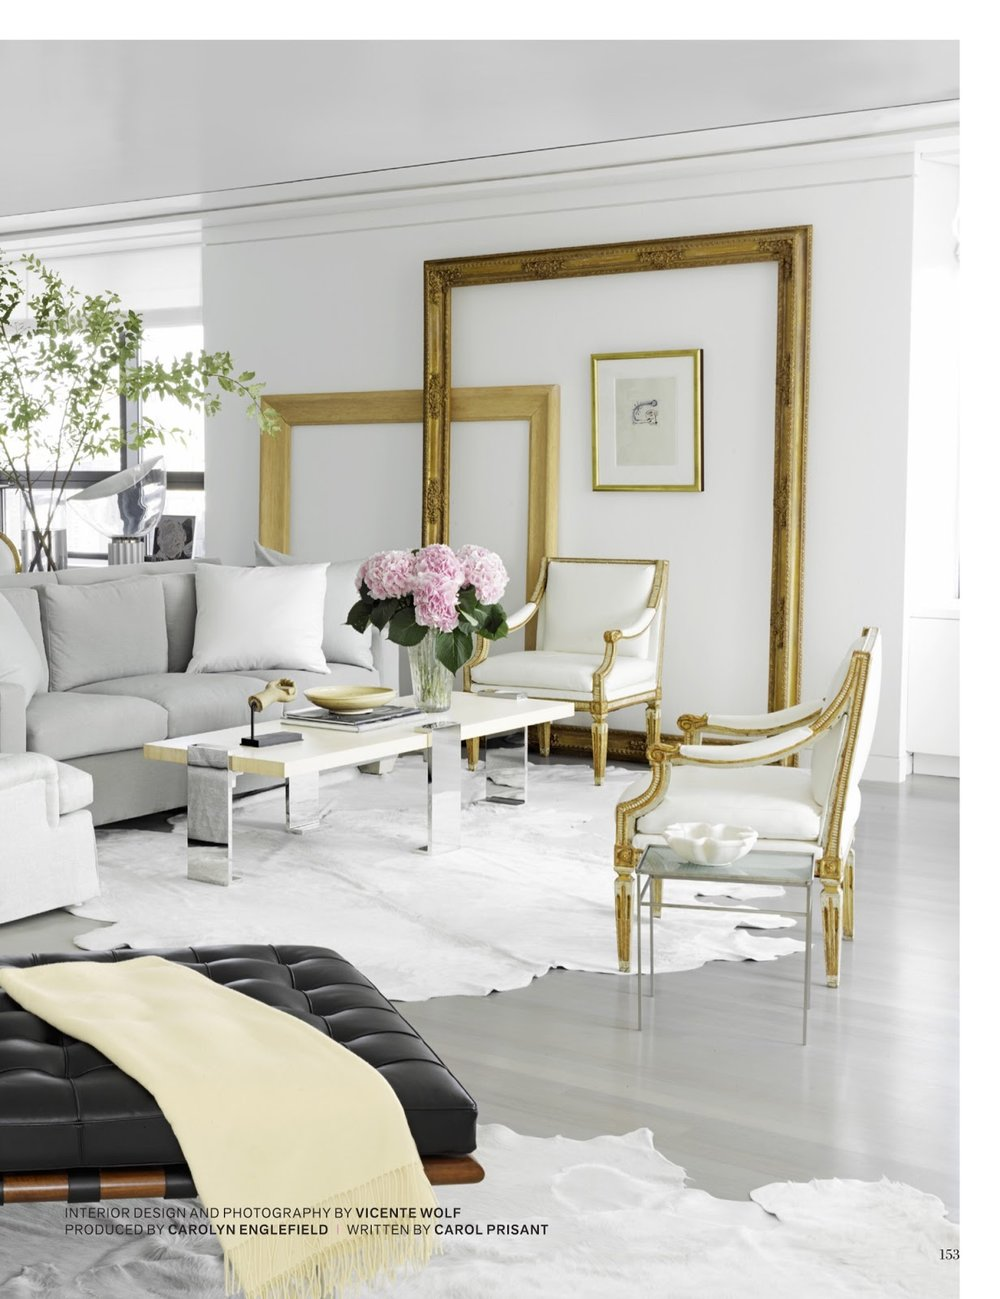 The White Couch :: Your Blank Canvas to Design. Image via Veranda (Vincente Wolf Interiors)